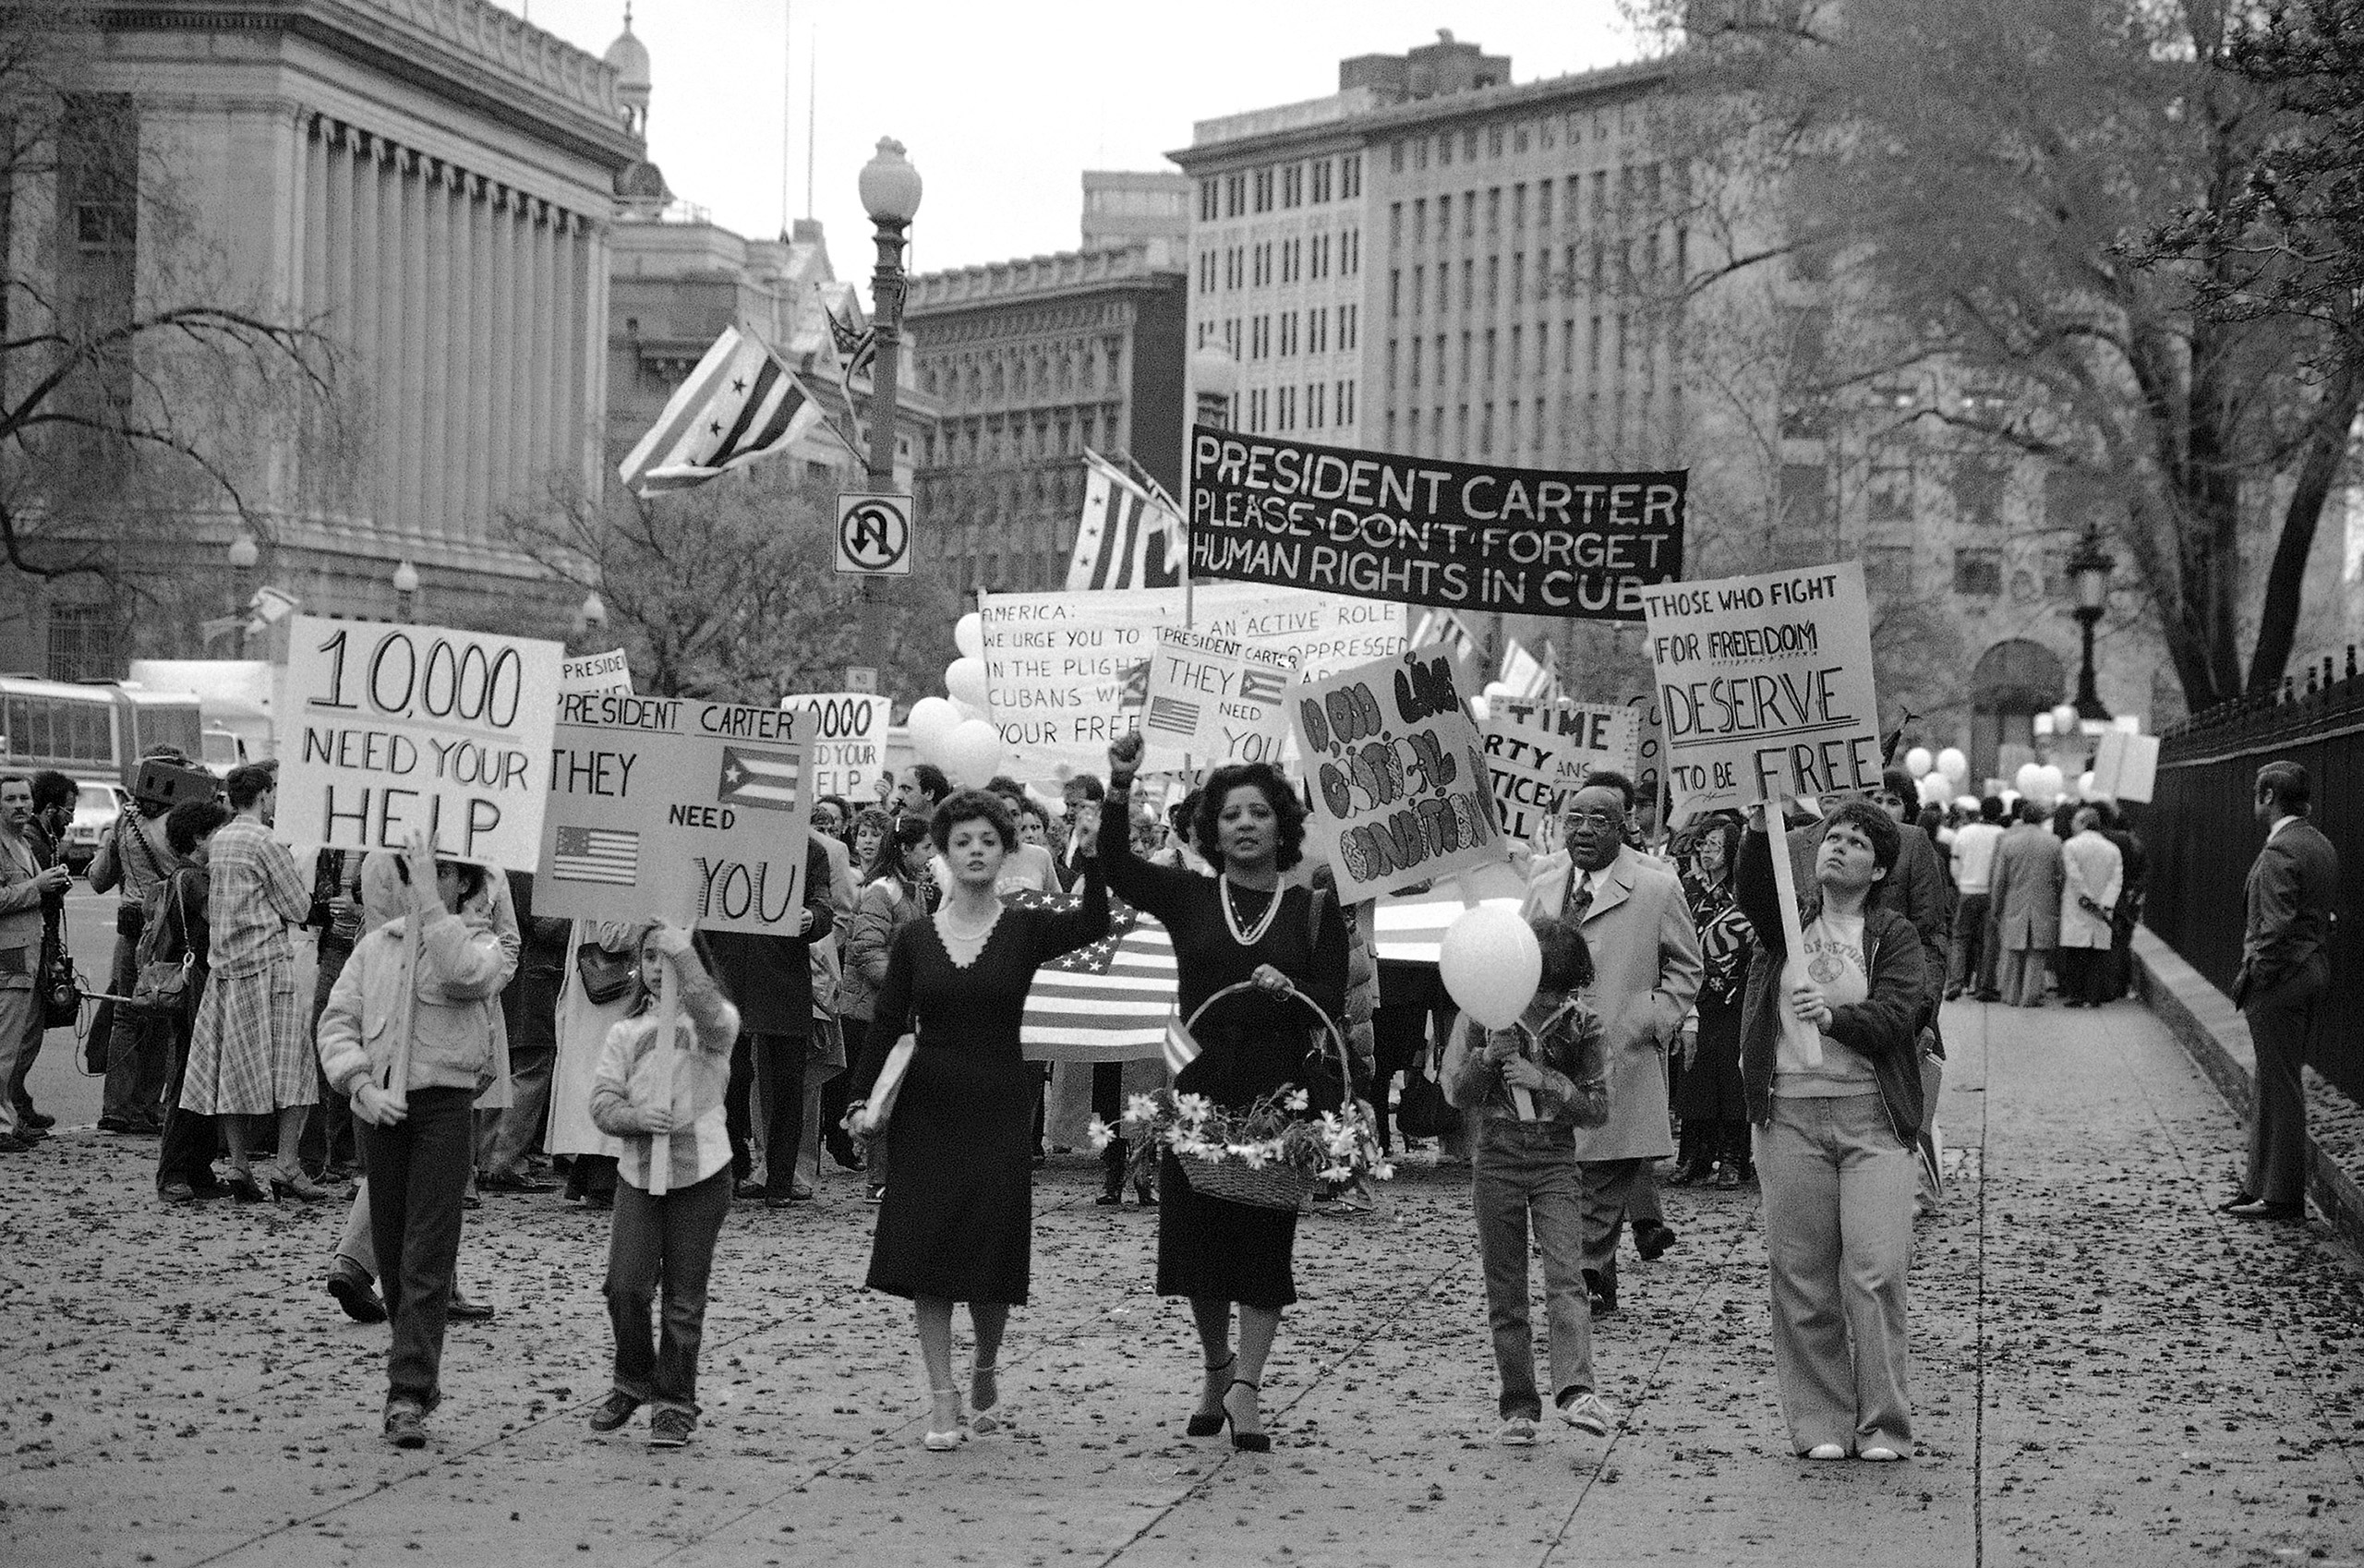 A group marches to the White House to thank President Jimmy Carter for his decision to admit 3,500 Cuban refugees from those at the Peruvian Embassy in Havana. Mrs. Violeta Mora of Chevy Chase, Md., presented the basket of flowers to a White House official for delivery to President Carter in Washington on Monday, April 14, 1980.